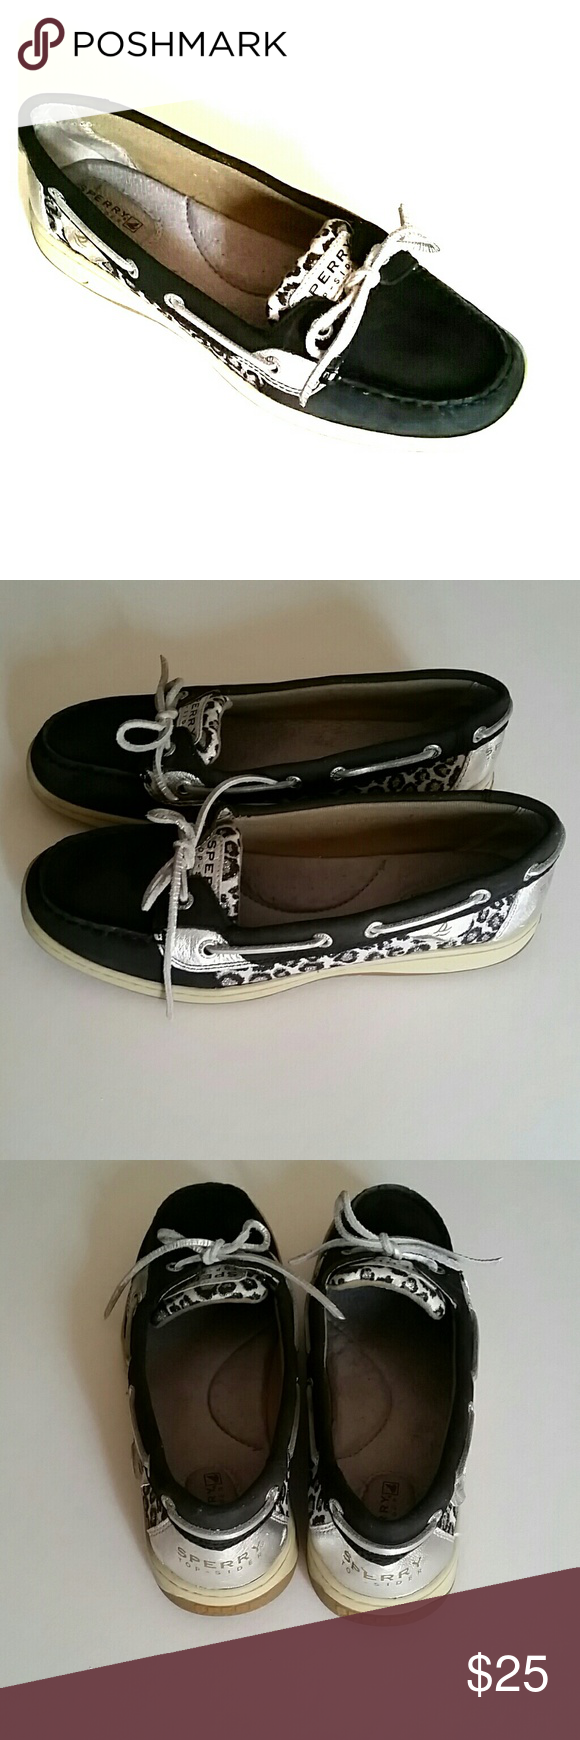 Sperry leopard print top sider Black and silver size 8.5 Sperry Top-Sider Shoes Flats & Loafers